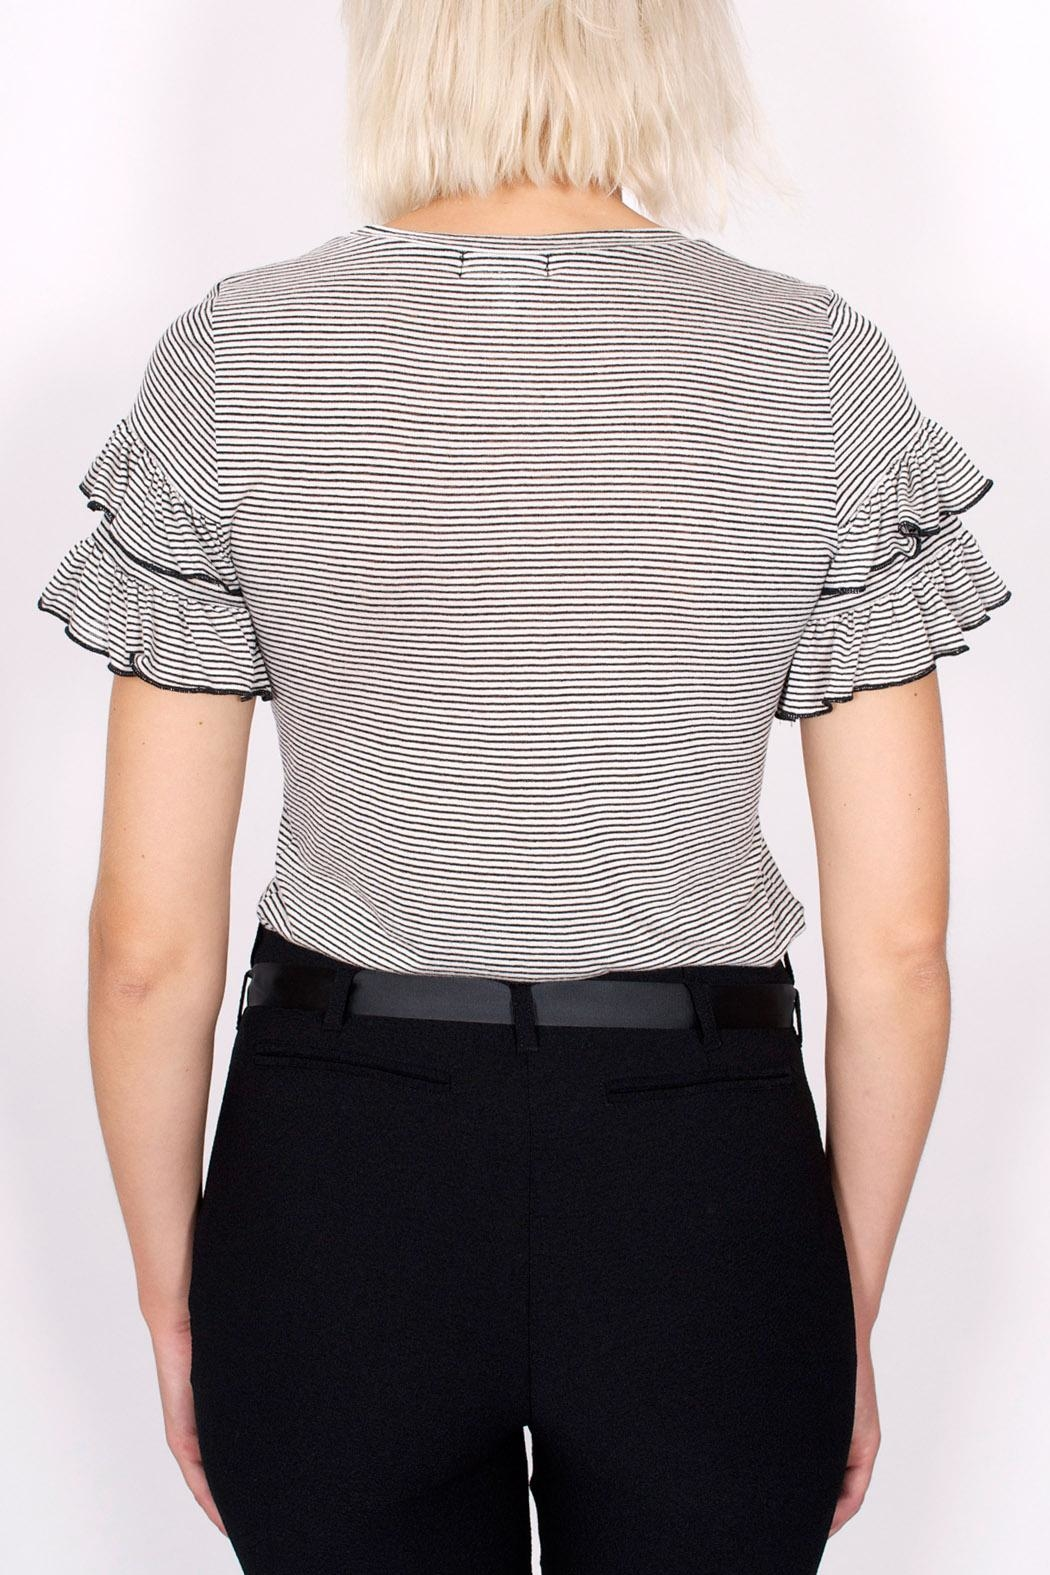 NYTT Ruffle Striped Tee - Side Cropped Image